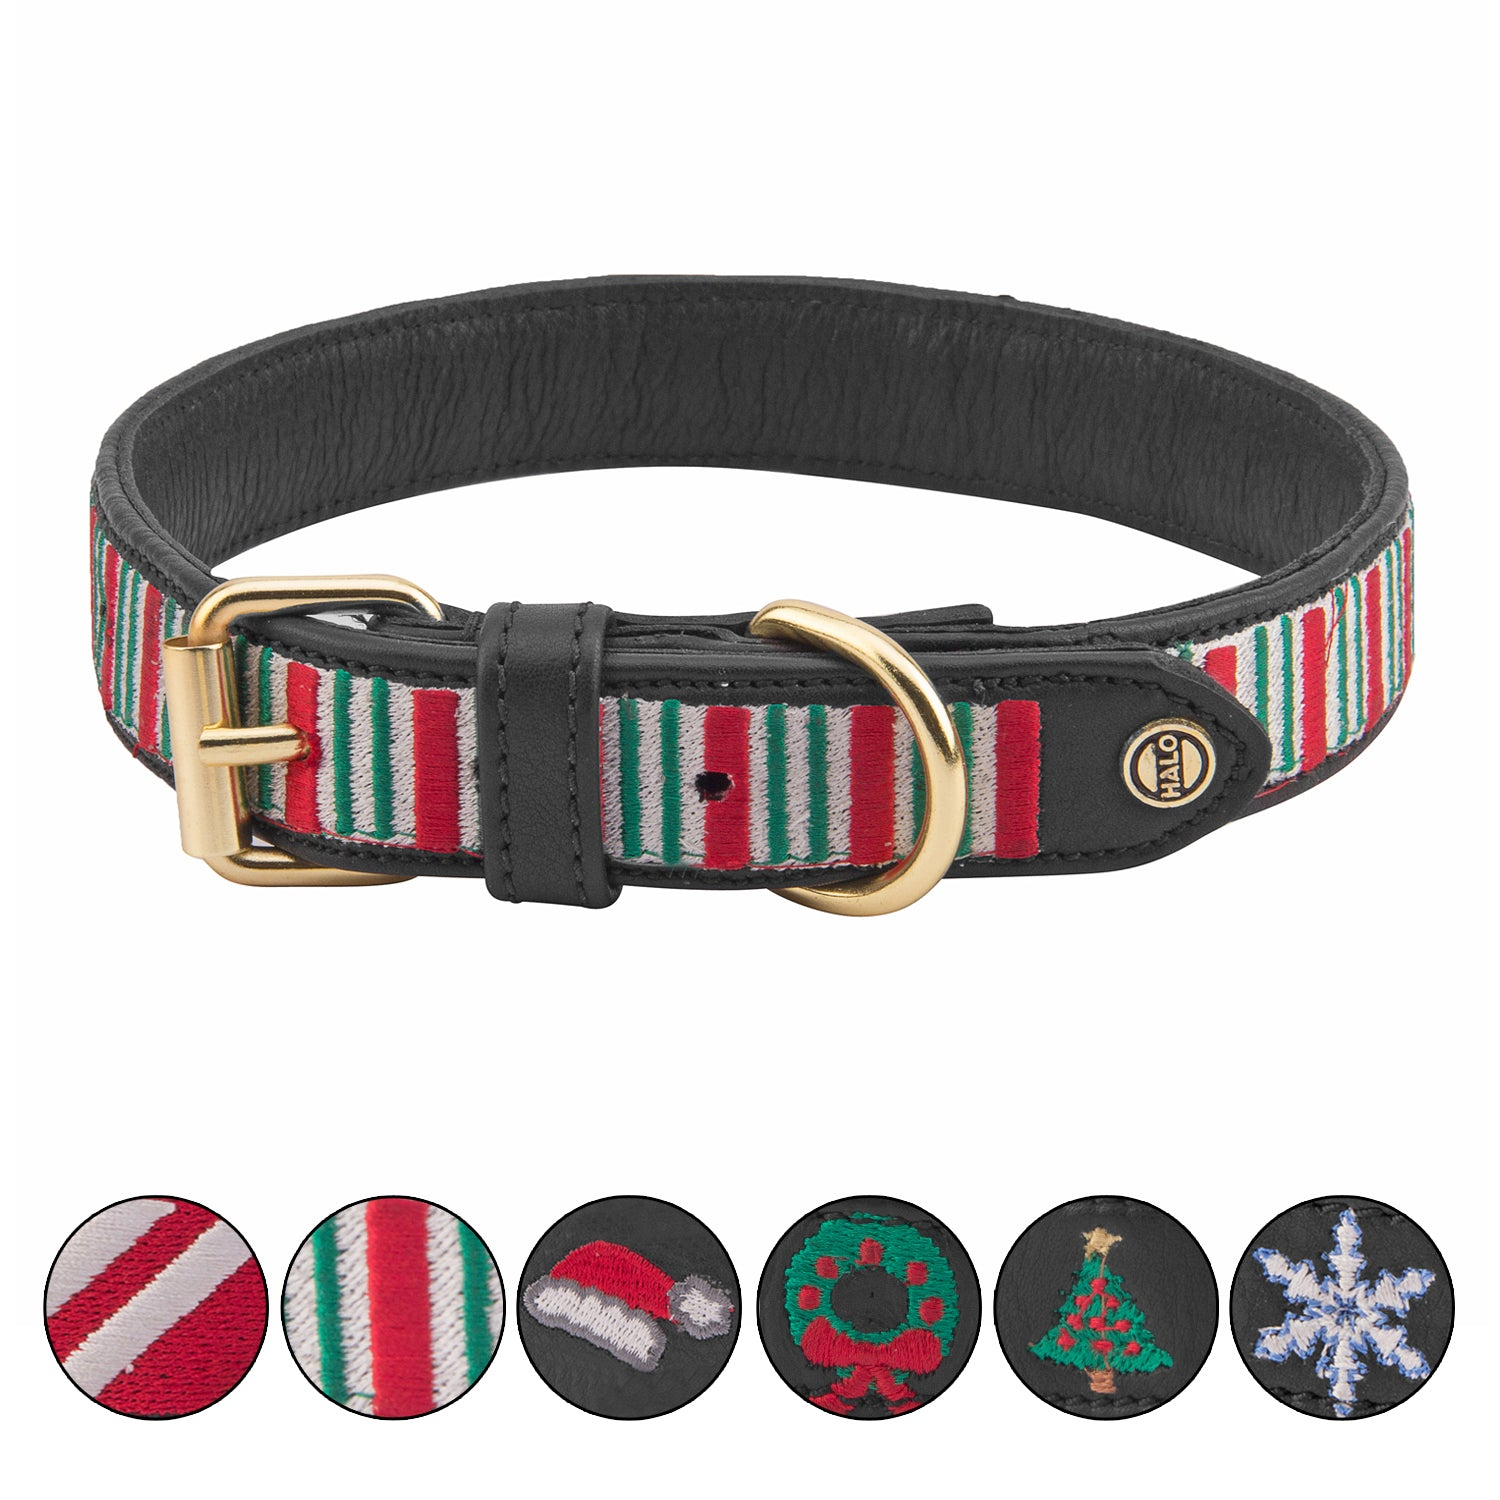 Halo Dog Collar - Leather with Christmas Stripes Embroidery_1419